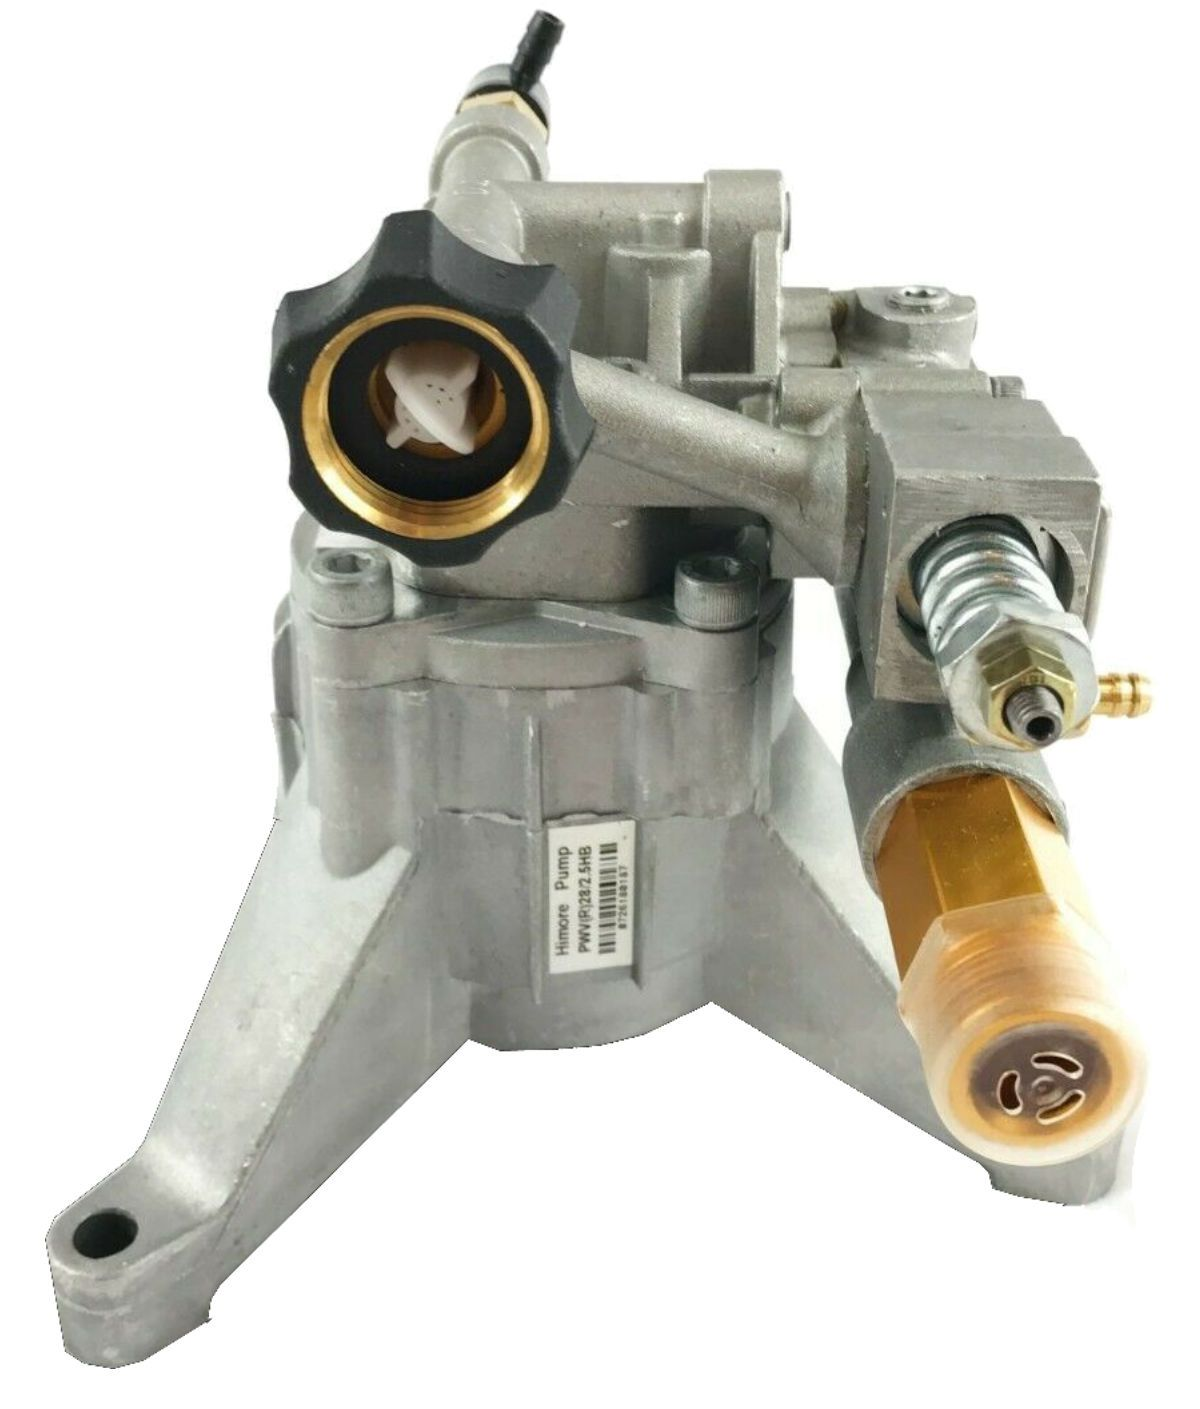 2700 PSI PRESSURE WASHER WATER PUMP fits Generac 1908 1909 1899-1 - AE-Power